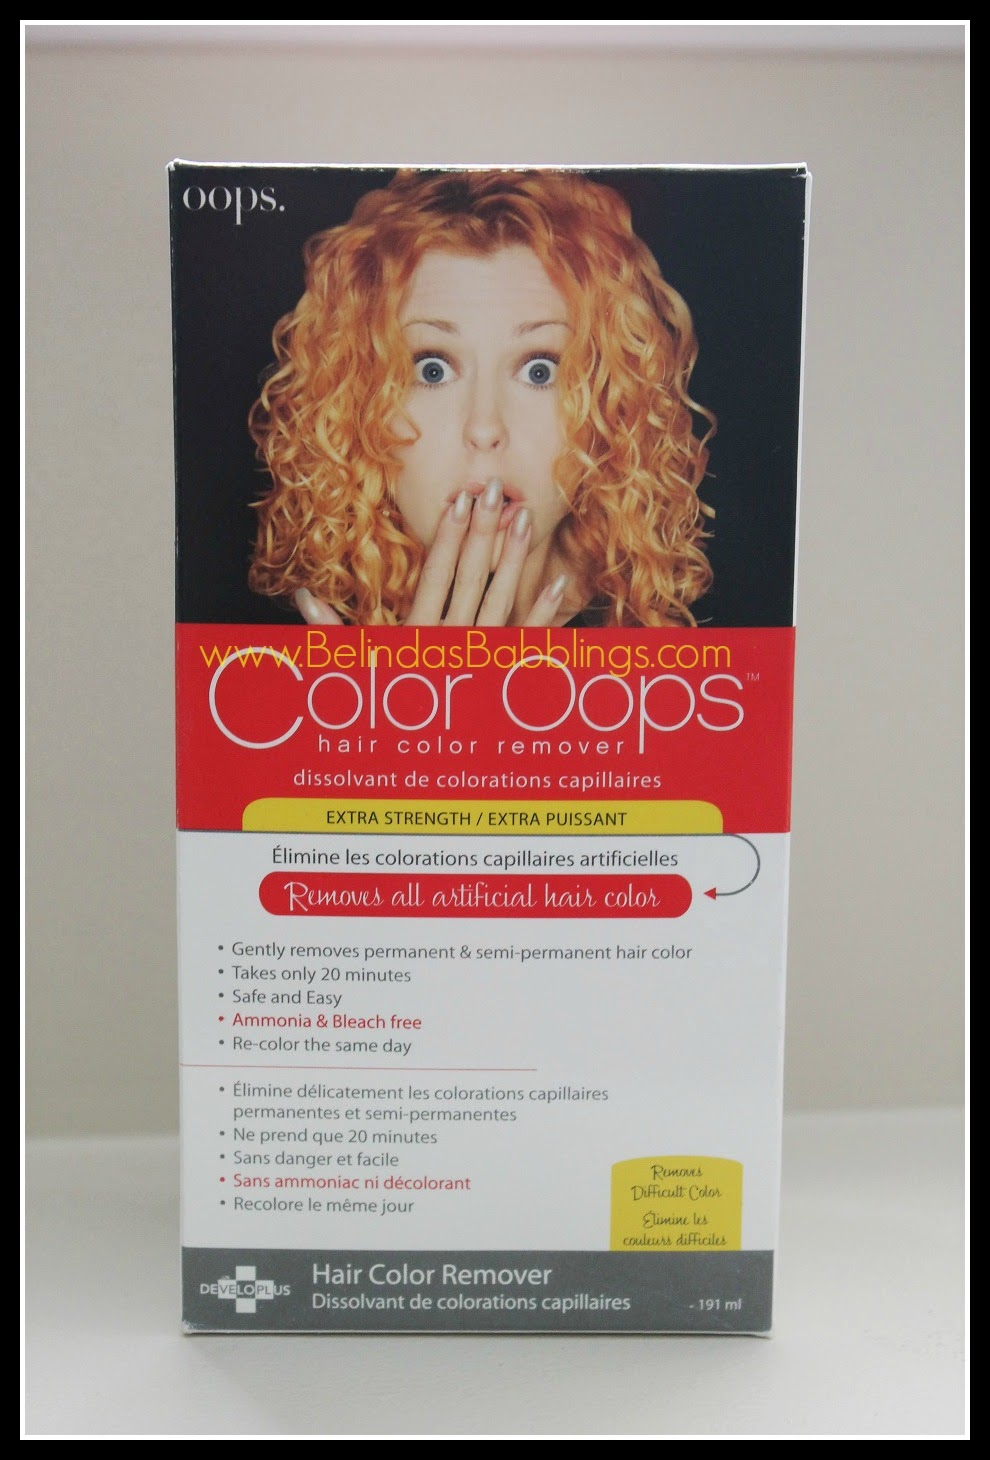 Using Color Oops On Black Hair Video Review And Before After